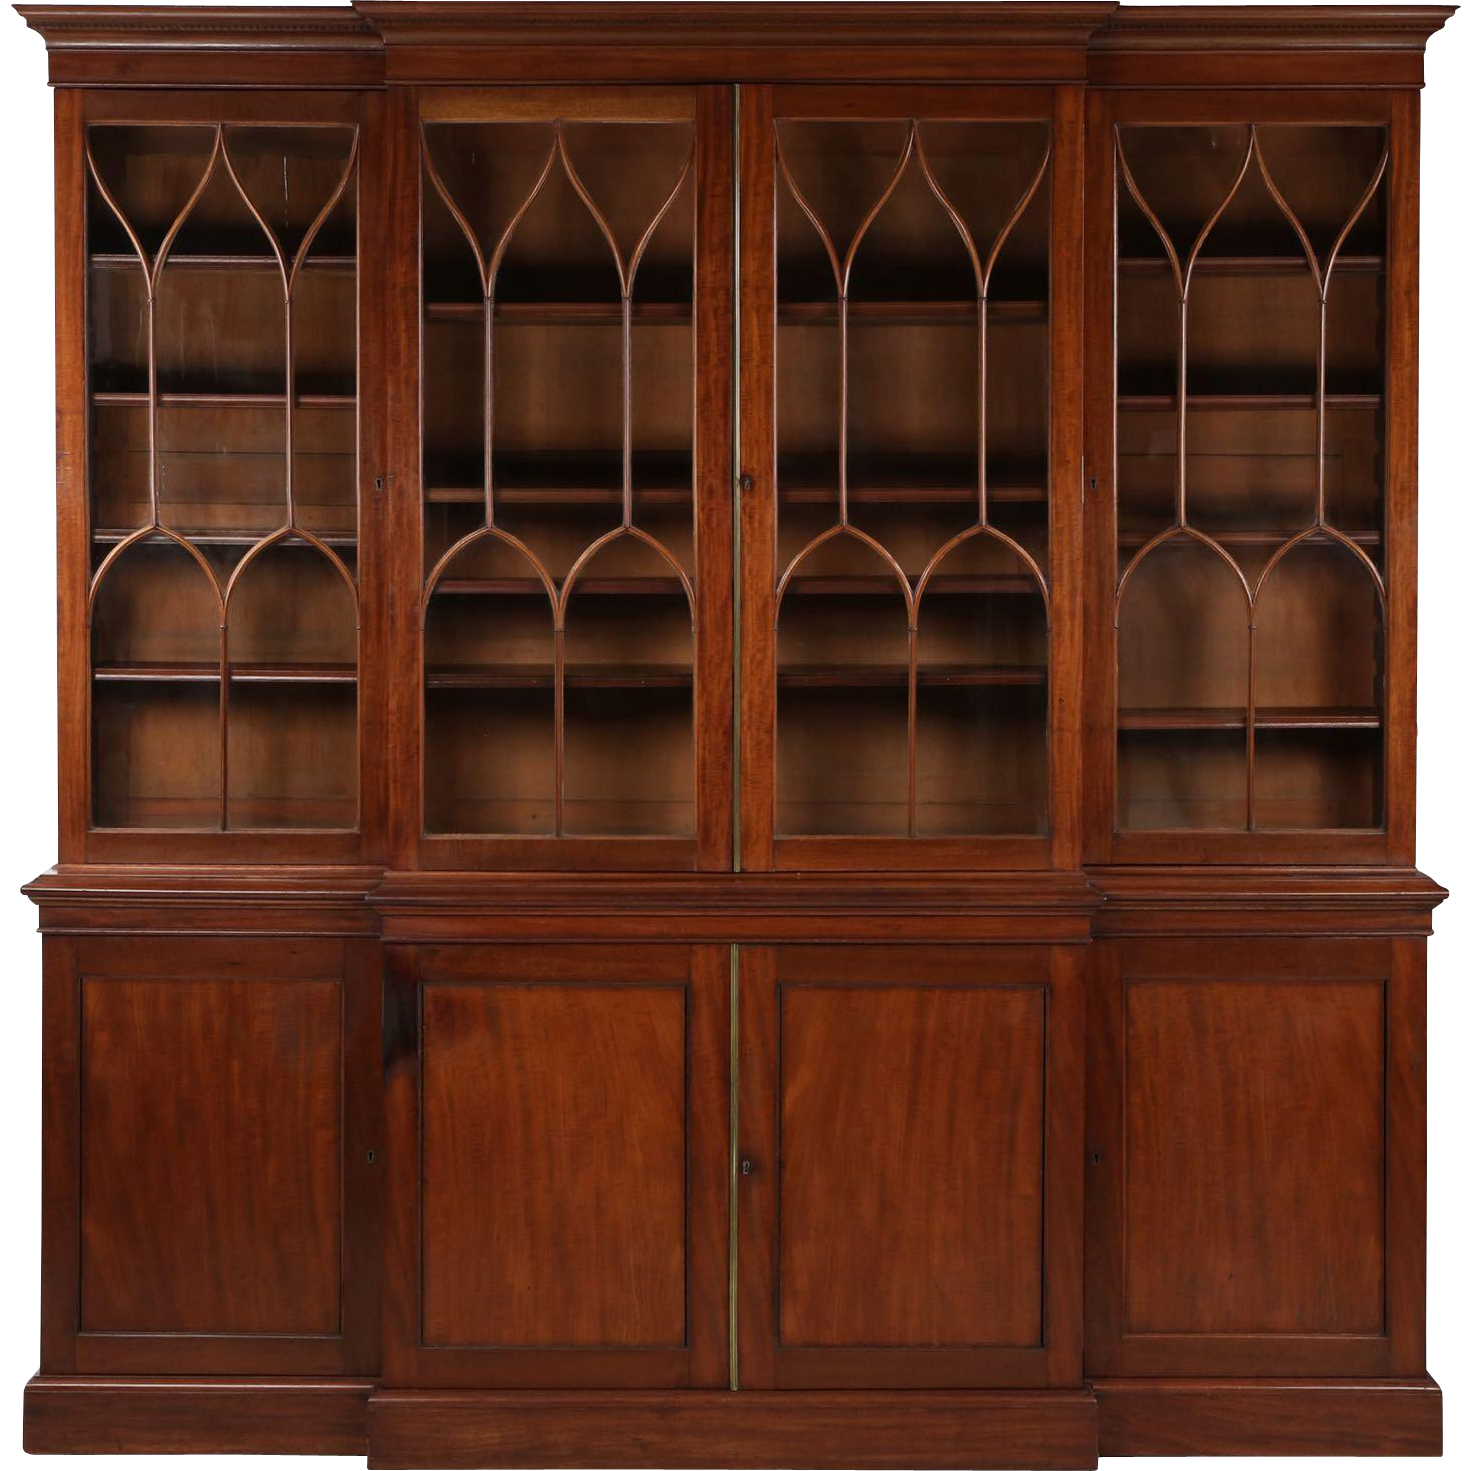 American Federal Mahogany Library Bookcase Antique Breakfront, 19th Century - American Federal Mahogany Library Bookcase Antique Breakfront, 19th